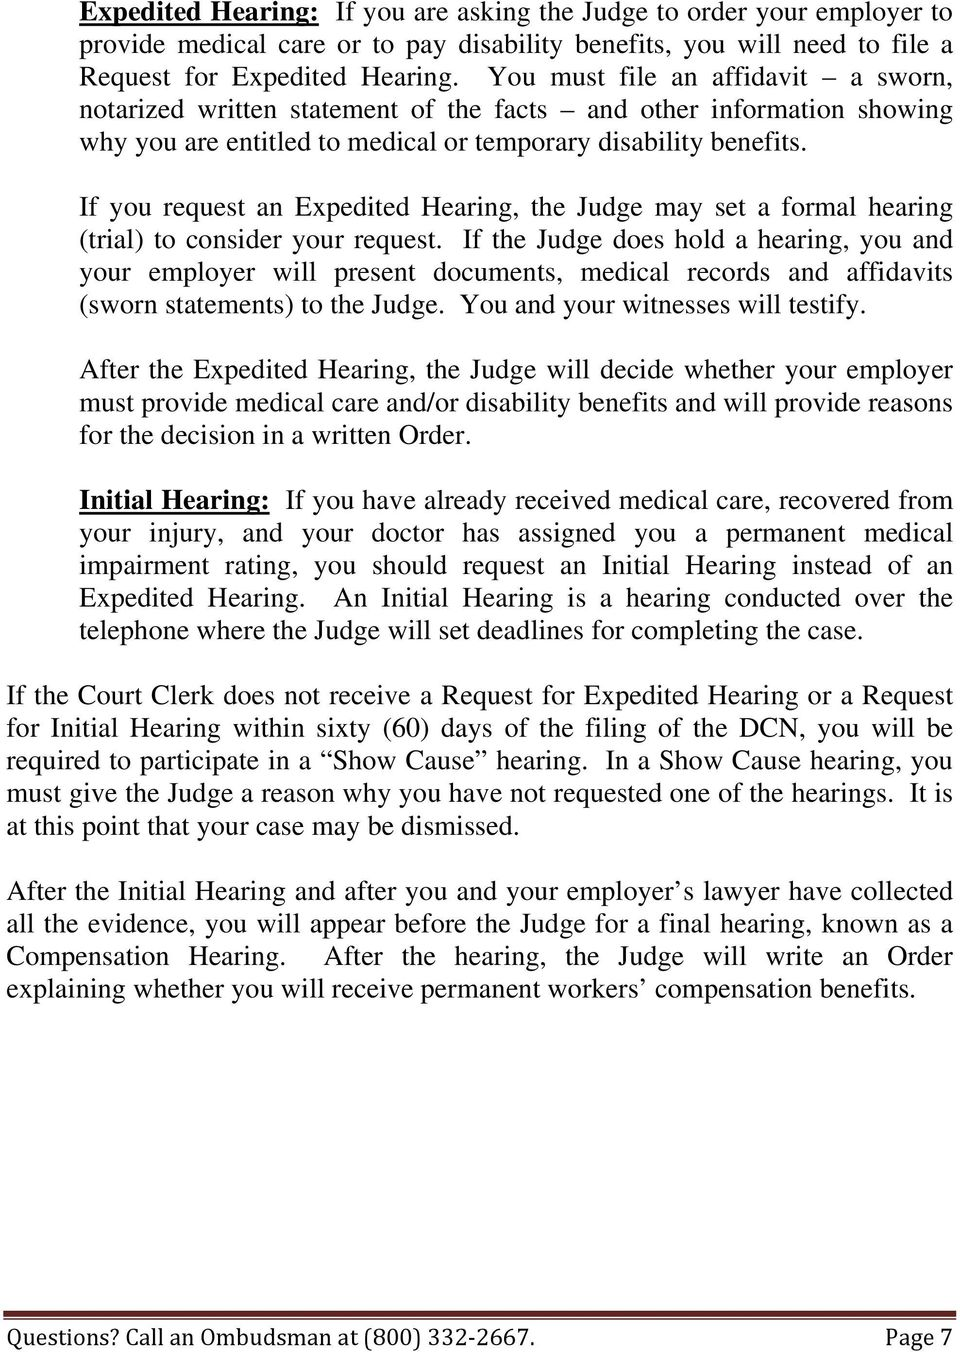 If you request an Expedited Hearing, the Judge may set a formal hearing (trial) to consider your request.